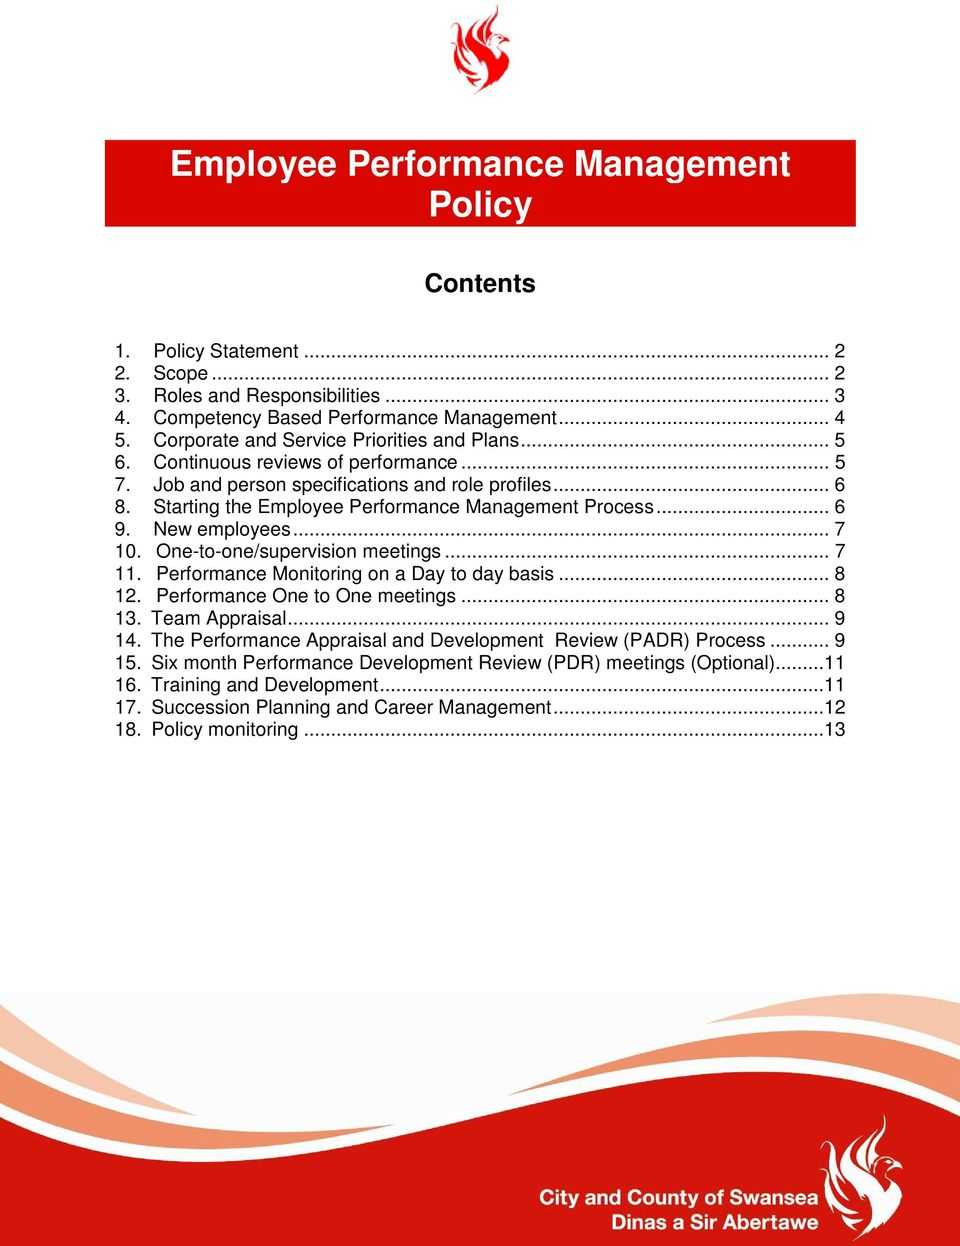 Starting the Employee Performance Management Process... 6 9. New employees... 7 10. One-to-one/supervision meetings... 7 11. Performance Monitoring on a Day to day basis... 8 12.